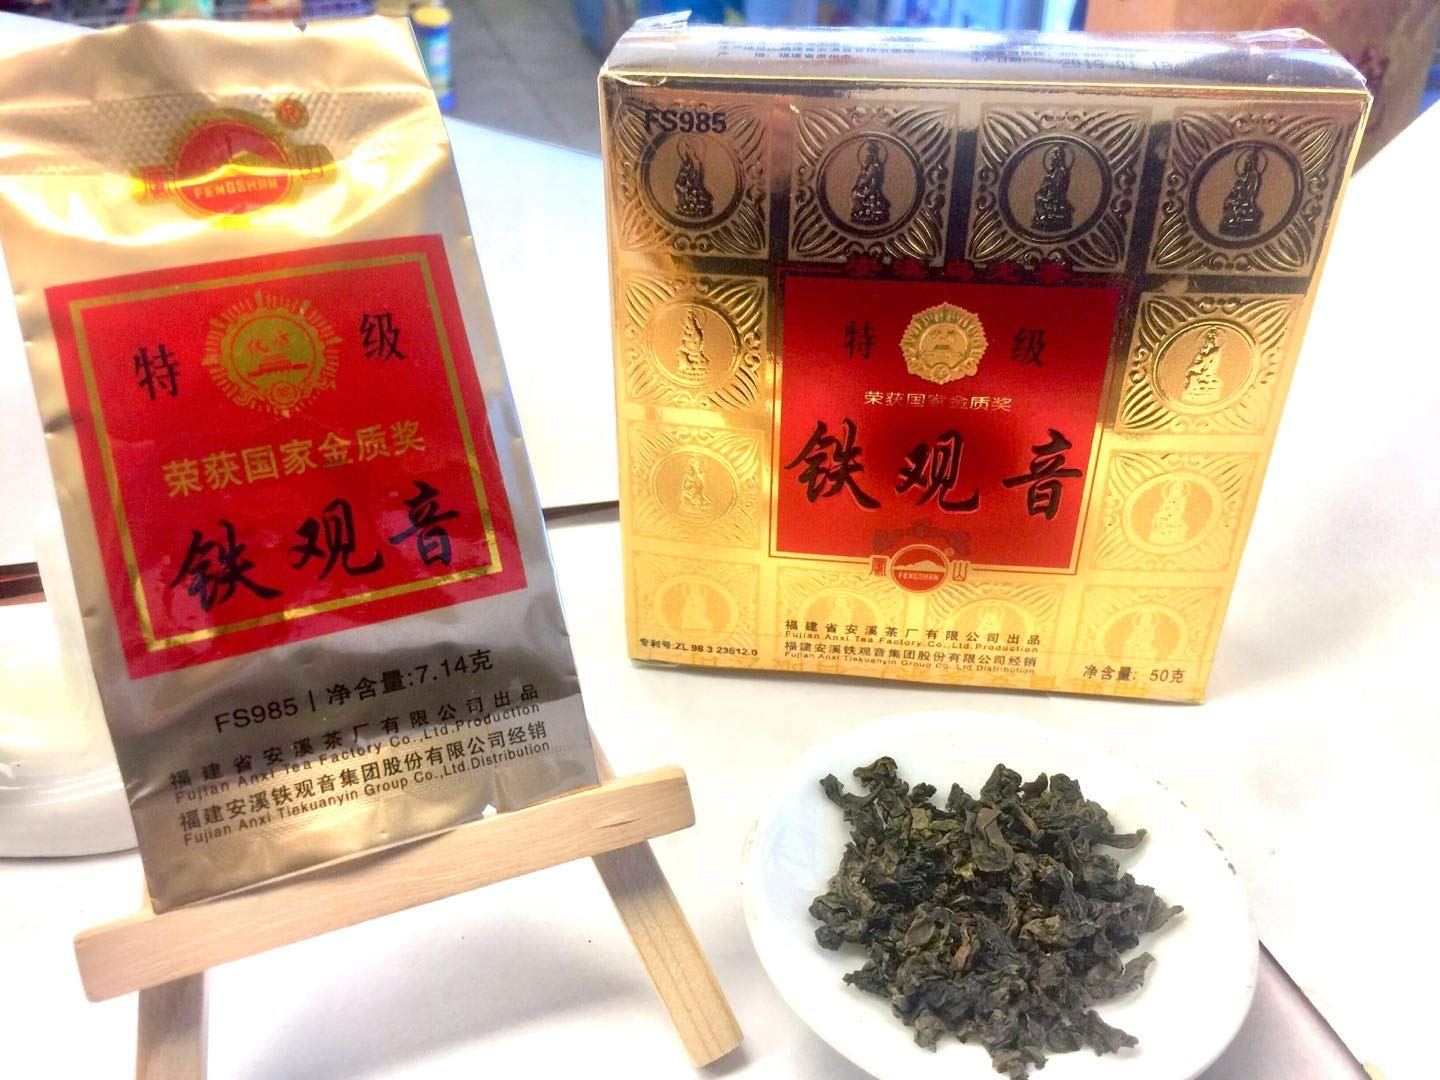 ANXI TIEGUANYIN ,CARBON ROASTED Classic Chinese Oolong tea, FENGSHAN , Anxi Tie Guan Yin Group, National Gold Prize winner-50g,7 packs per box, 7g per packet.凤山安溪铁观音浓香型国家金奖